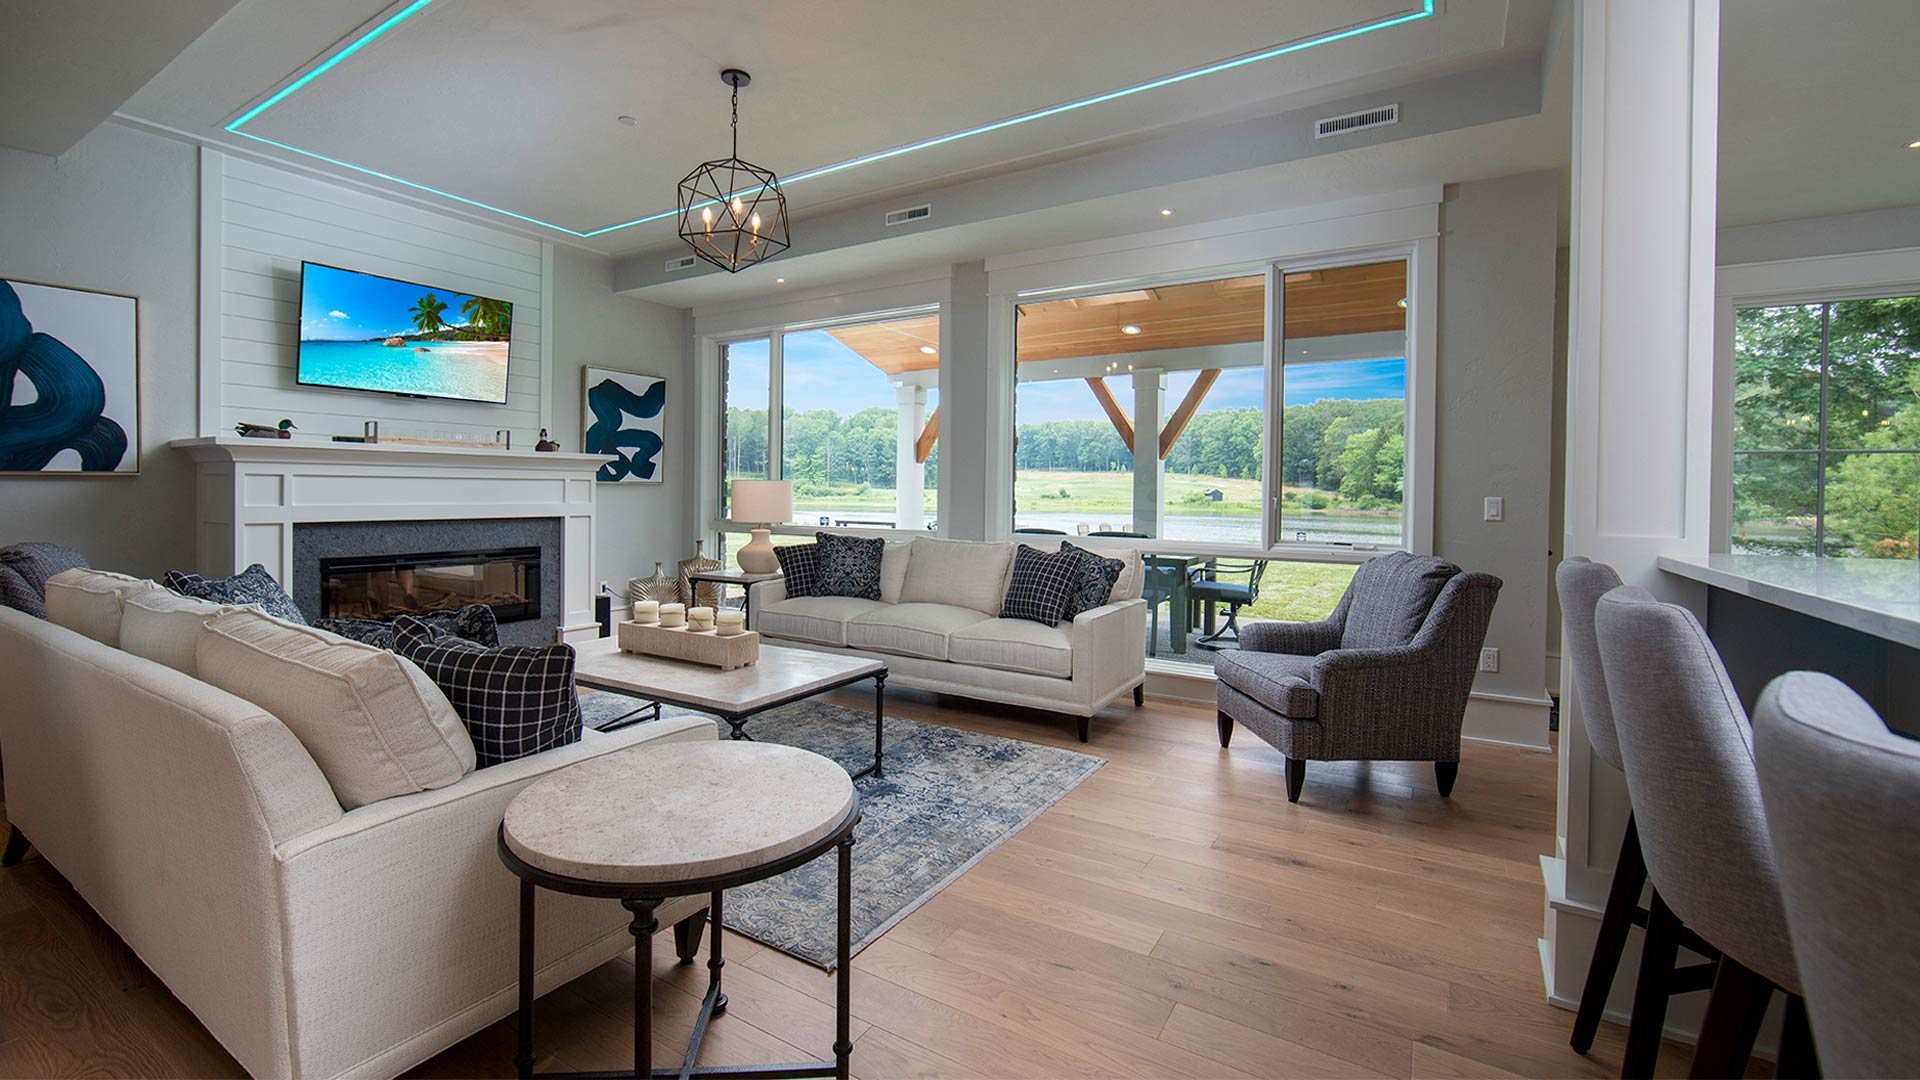 an interior shot of the living area. There are two neutral colored couches across from each other with a coffee table between them. There is a fireplace with modern art pieces on either side of the mantle. There is a sliding glass door leading out to a patio.